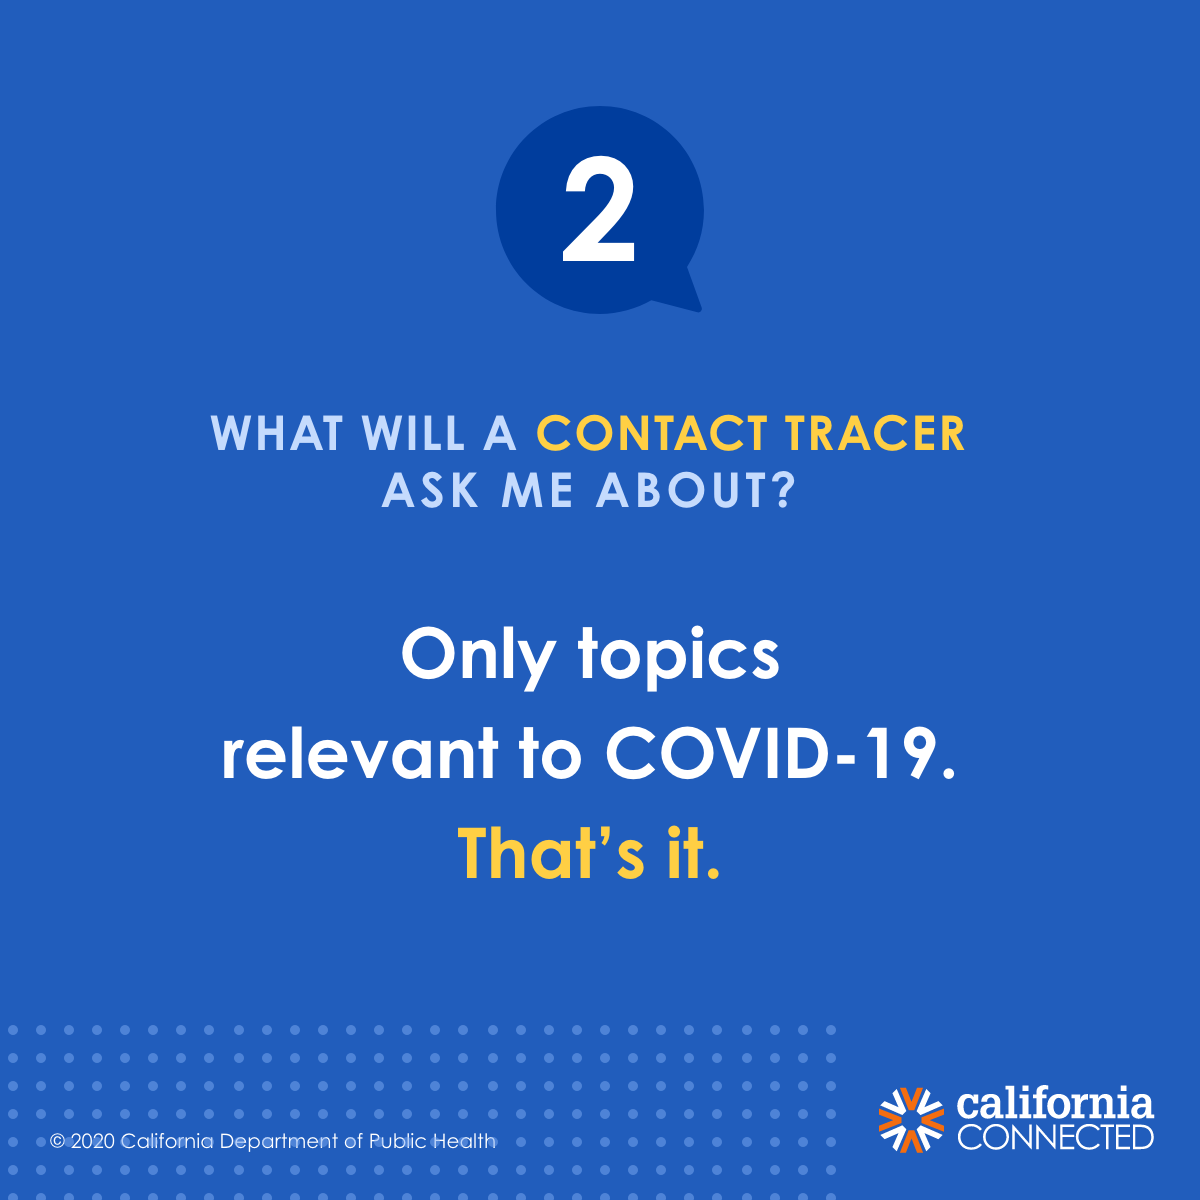 A contact tracer will only ask you about topics relevant to COVID-19. That's it.